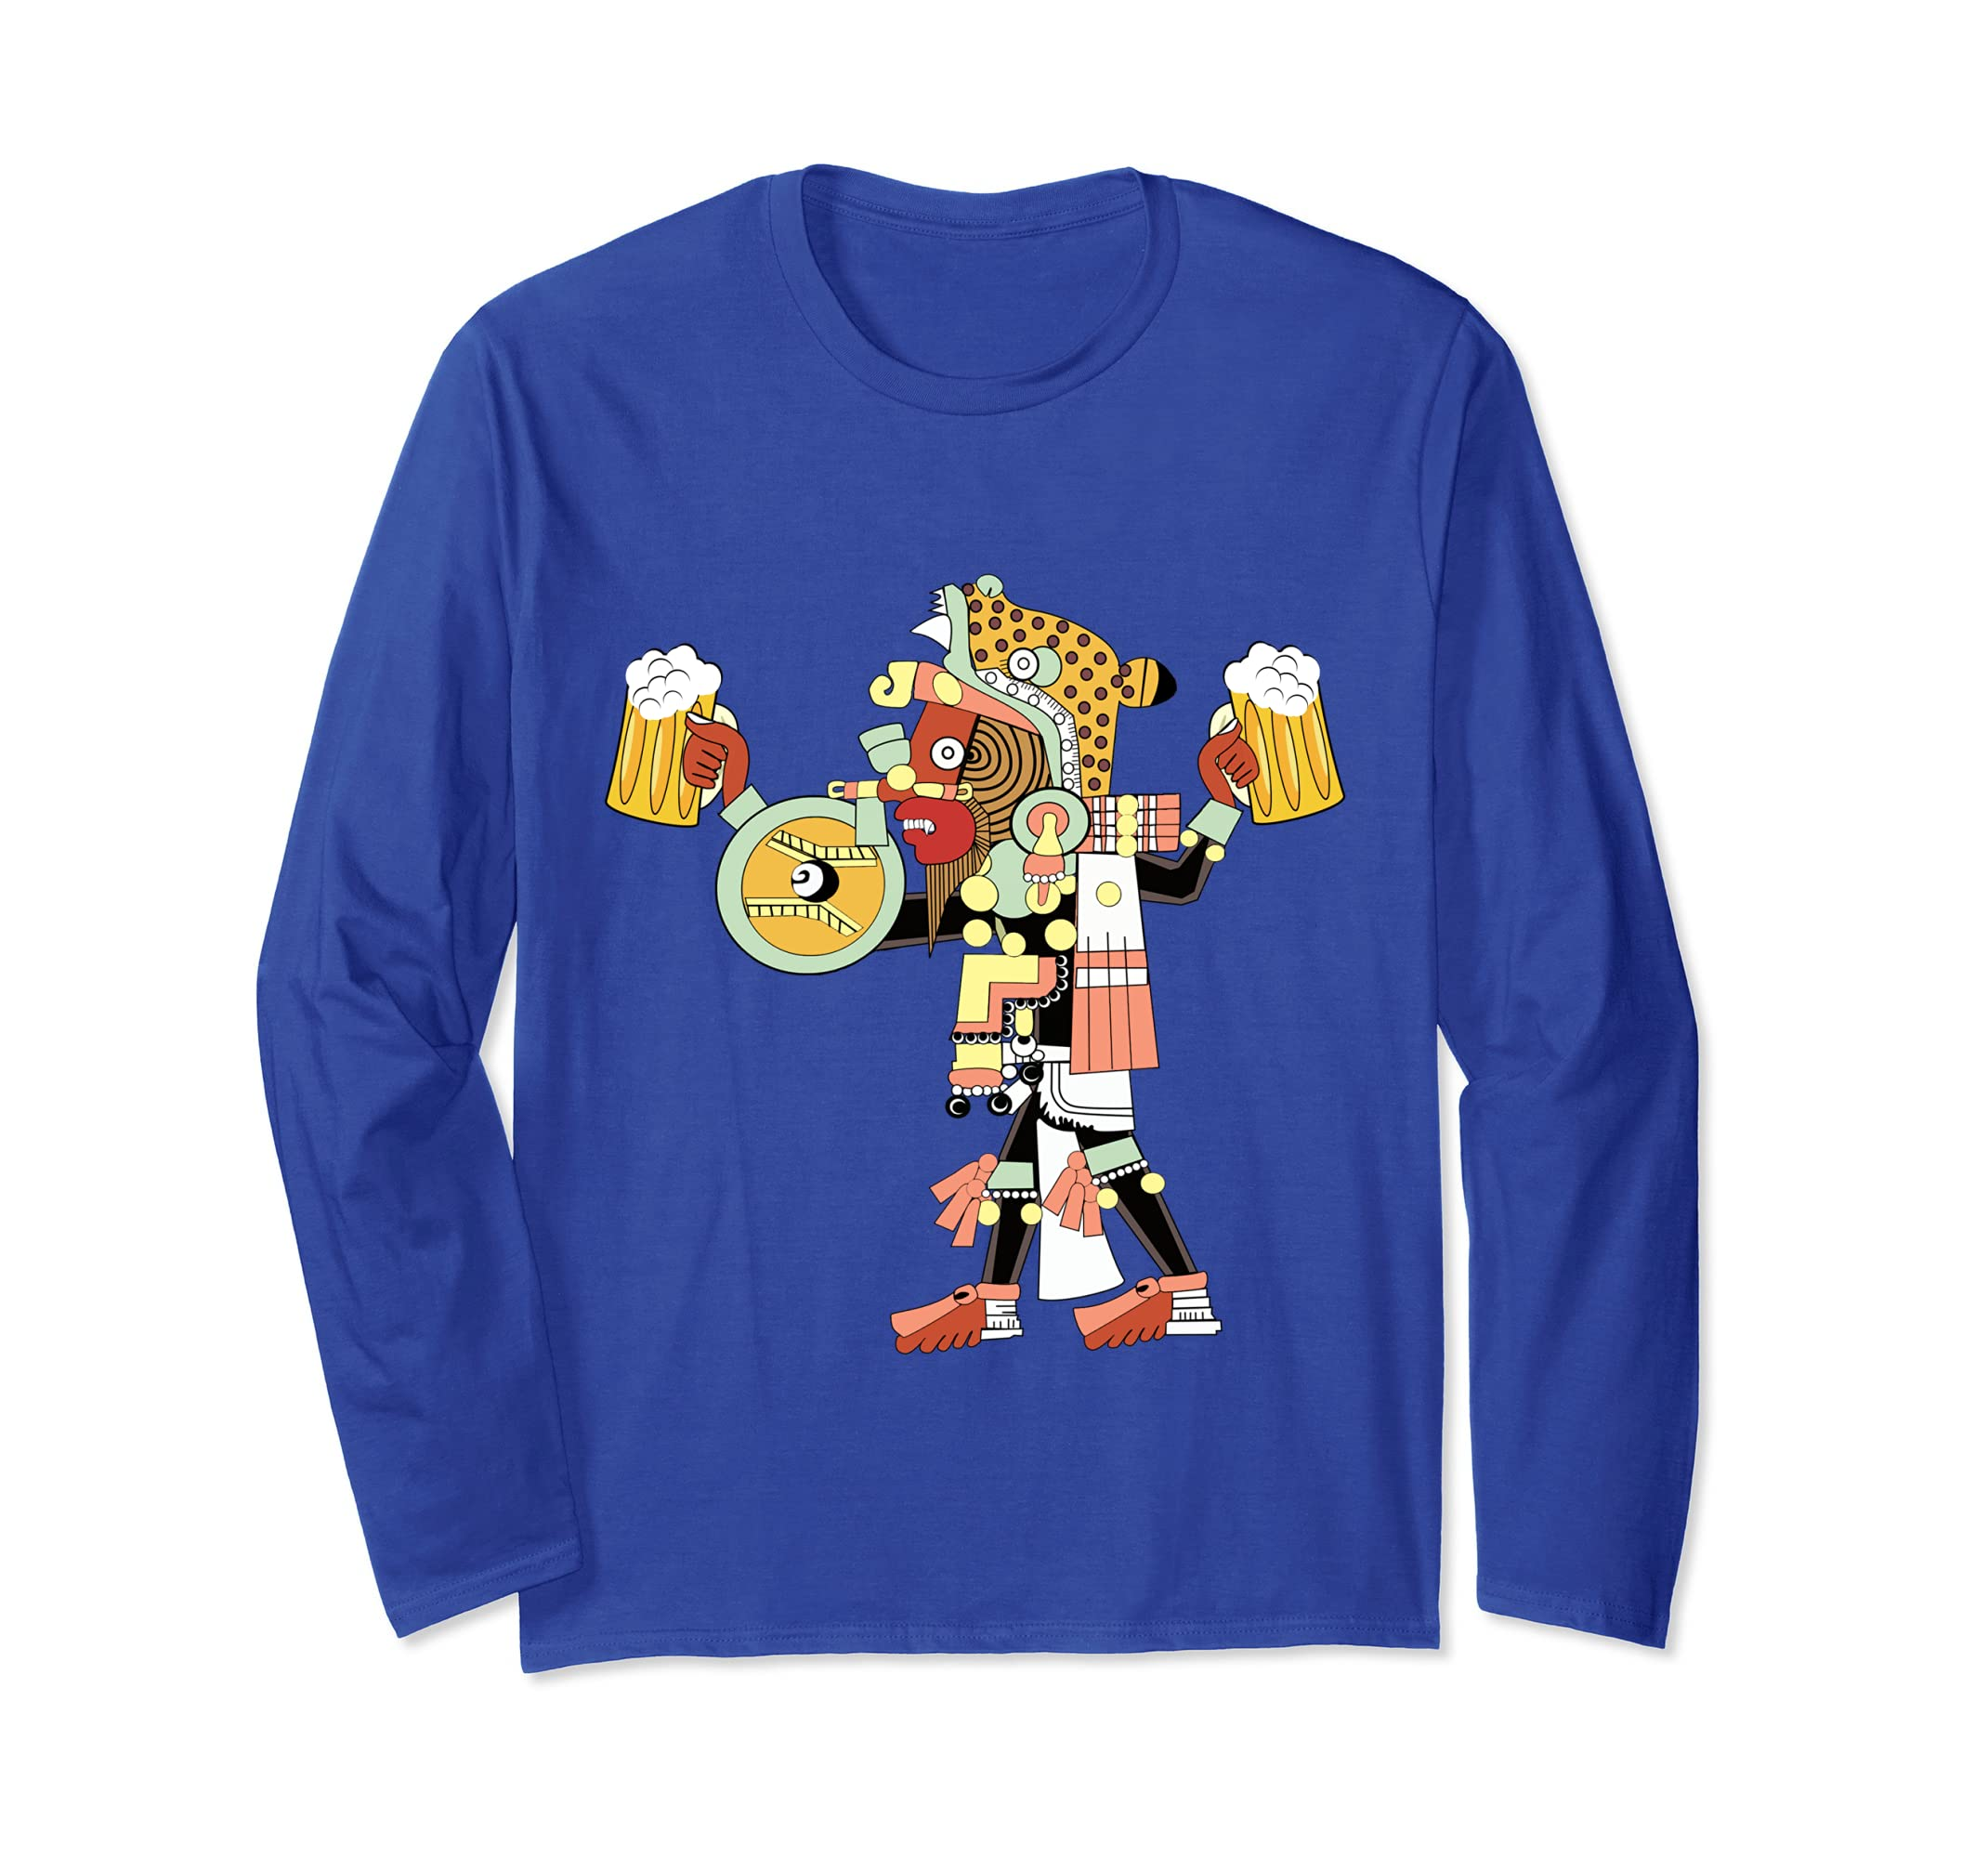 Aztec Maya Culture Longsleeve  Jaguar Warrior Beer Drinking-Awarplus